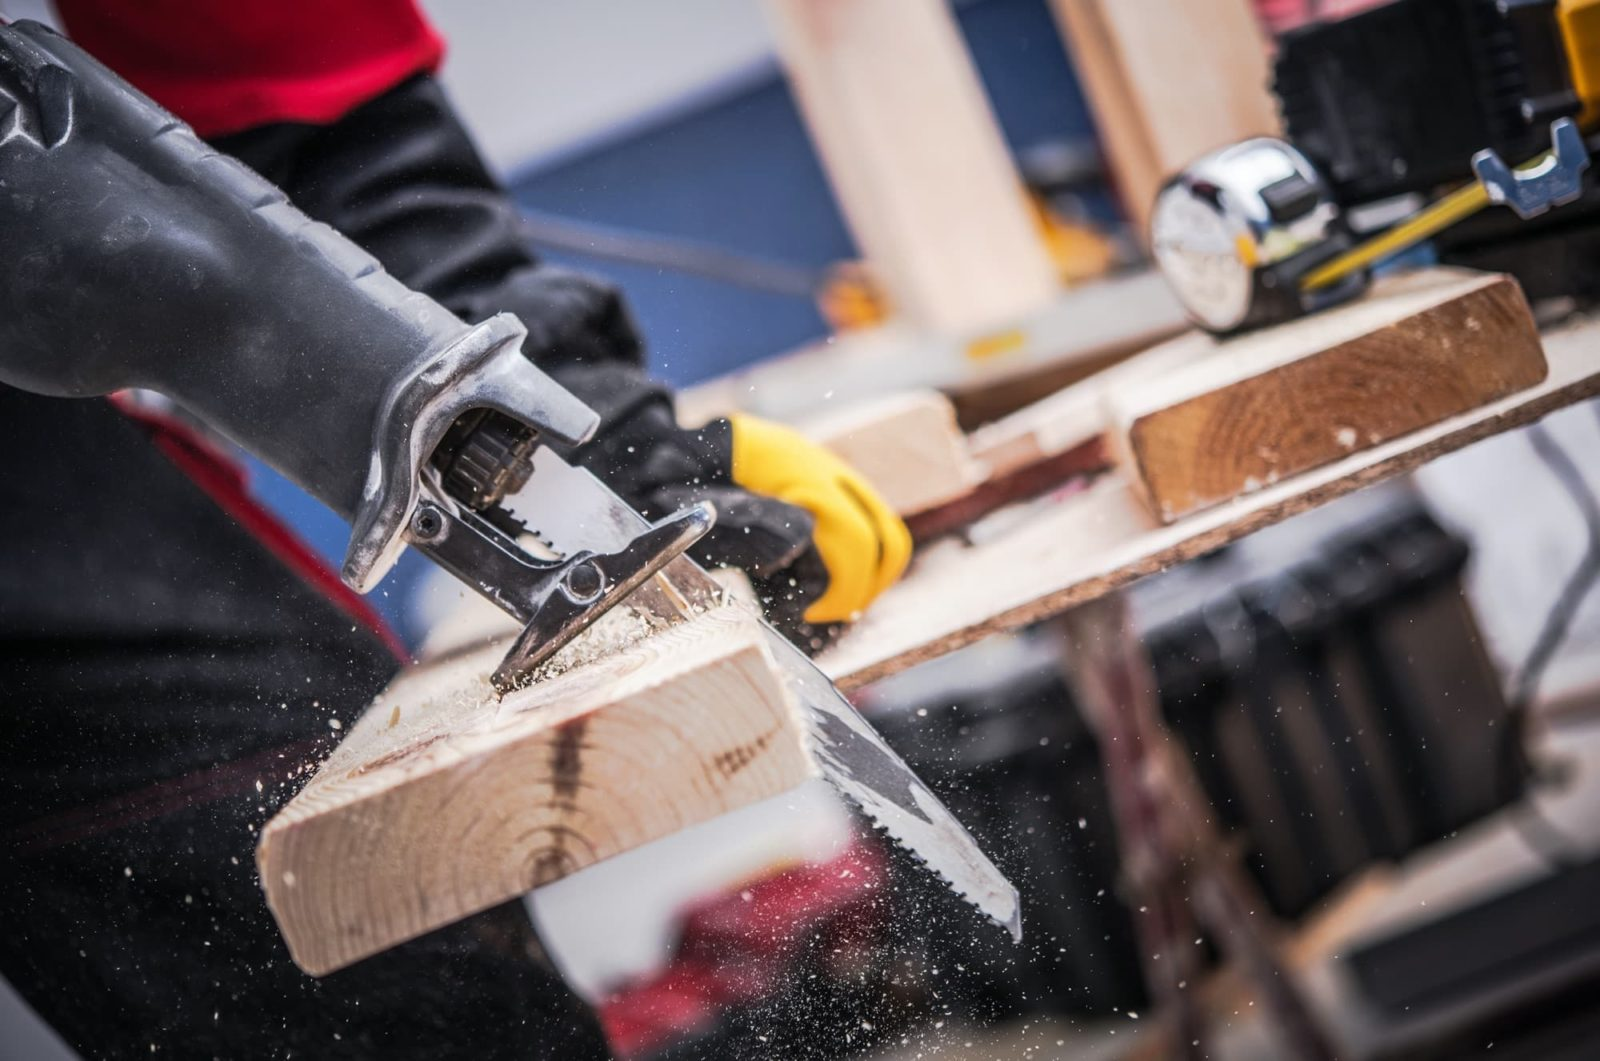 workman using a reciprocating saw to cut through timber on a worktable